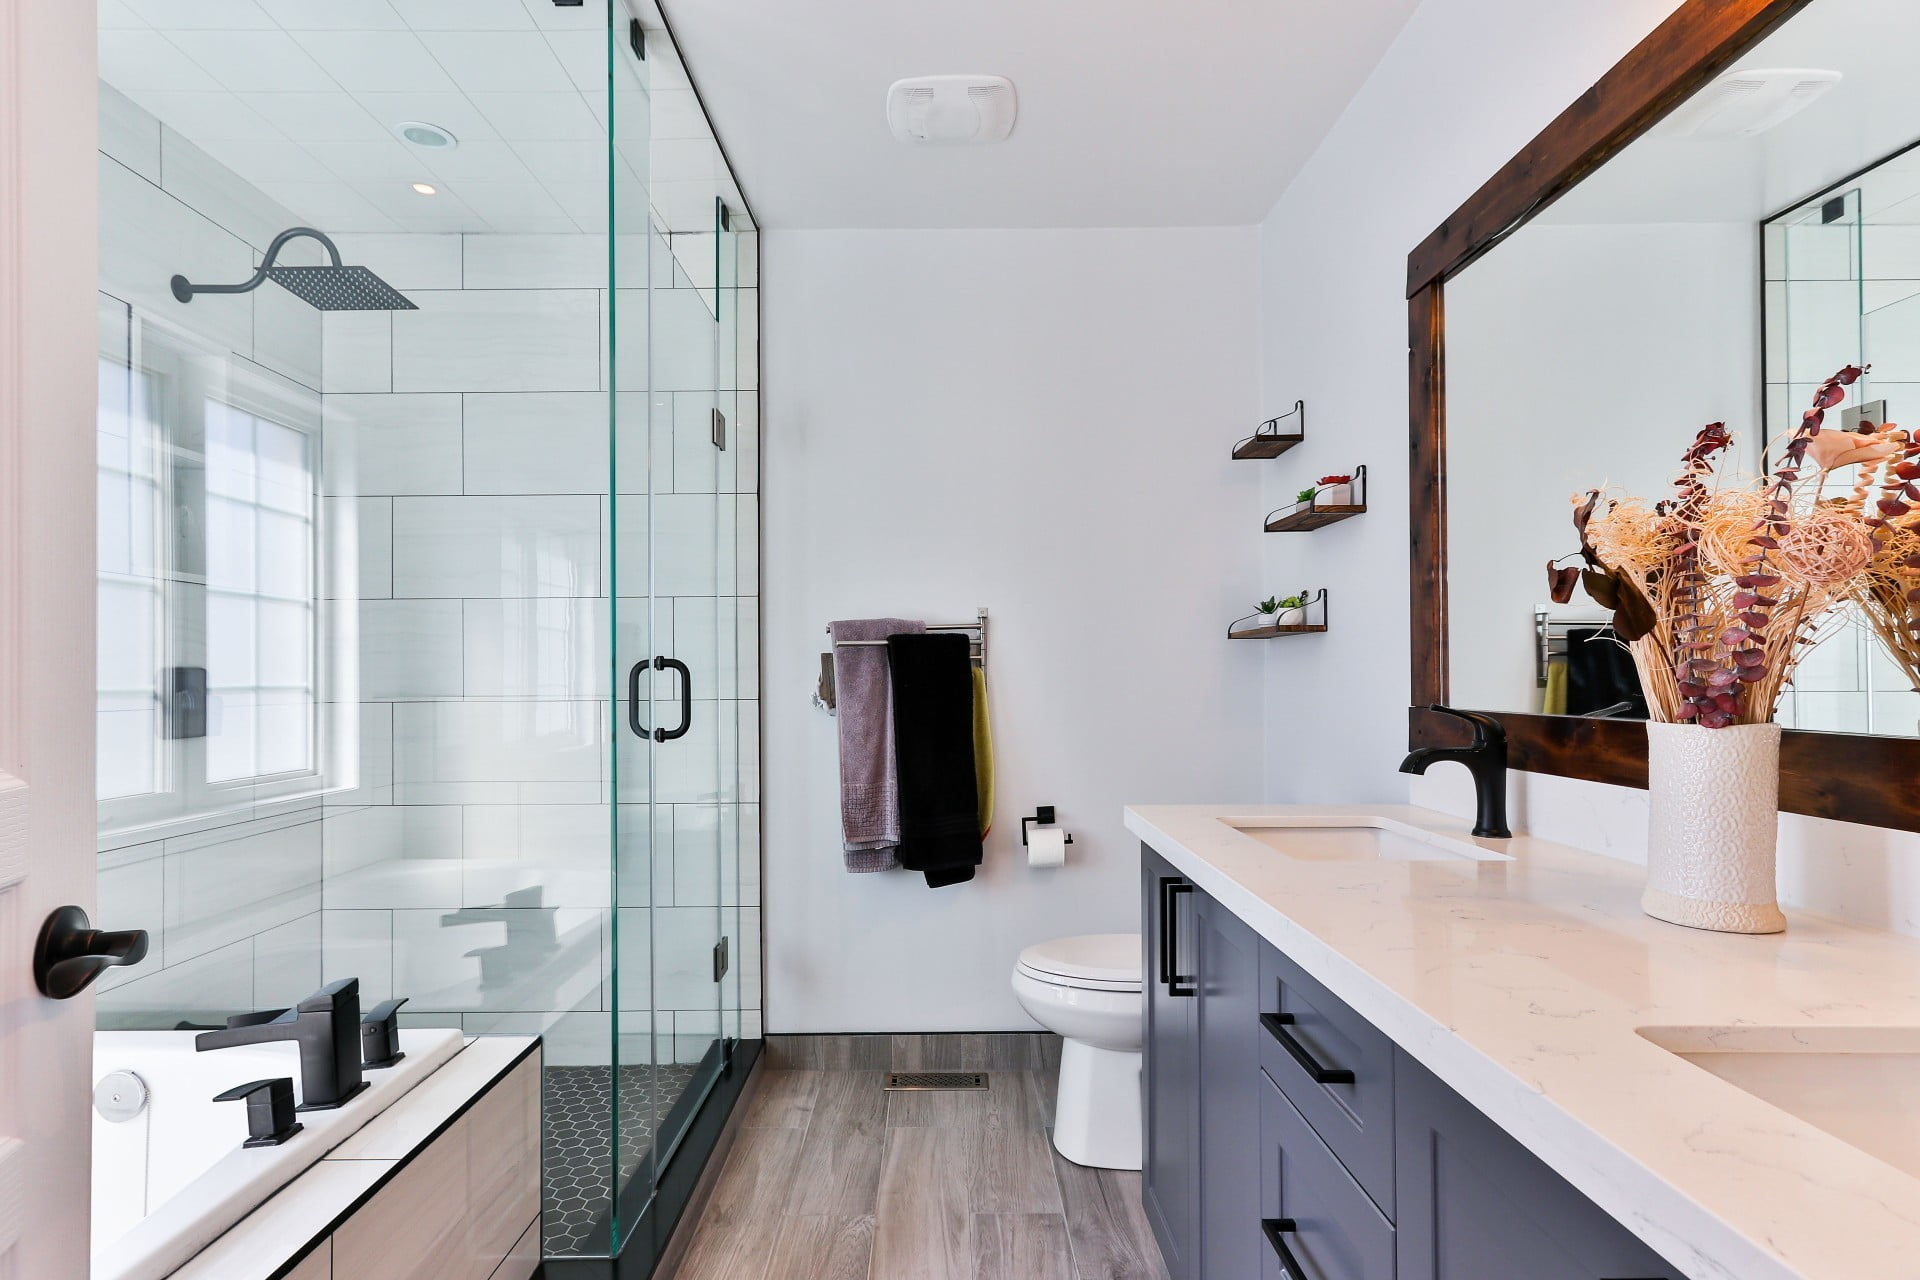 How to Clean Your Gross Bathroom in 20 Minutes Flat | 21Oak